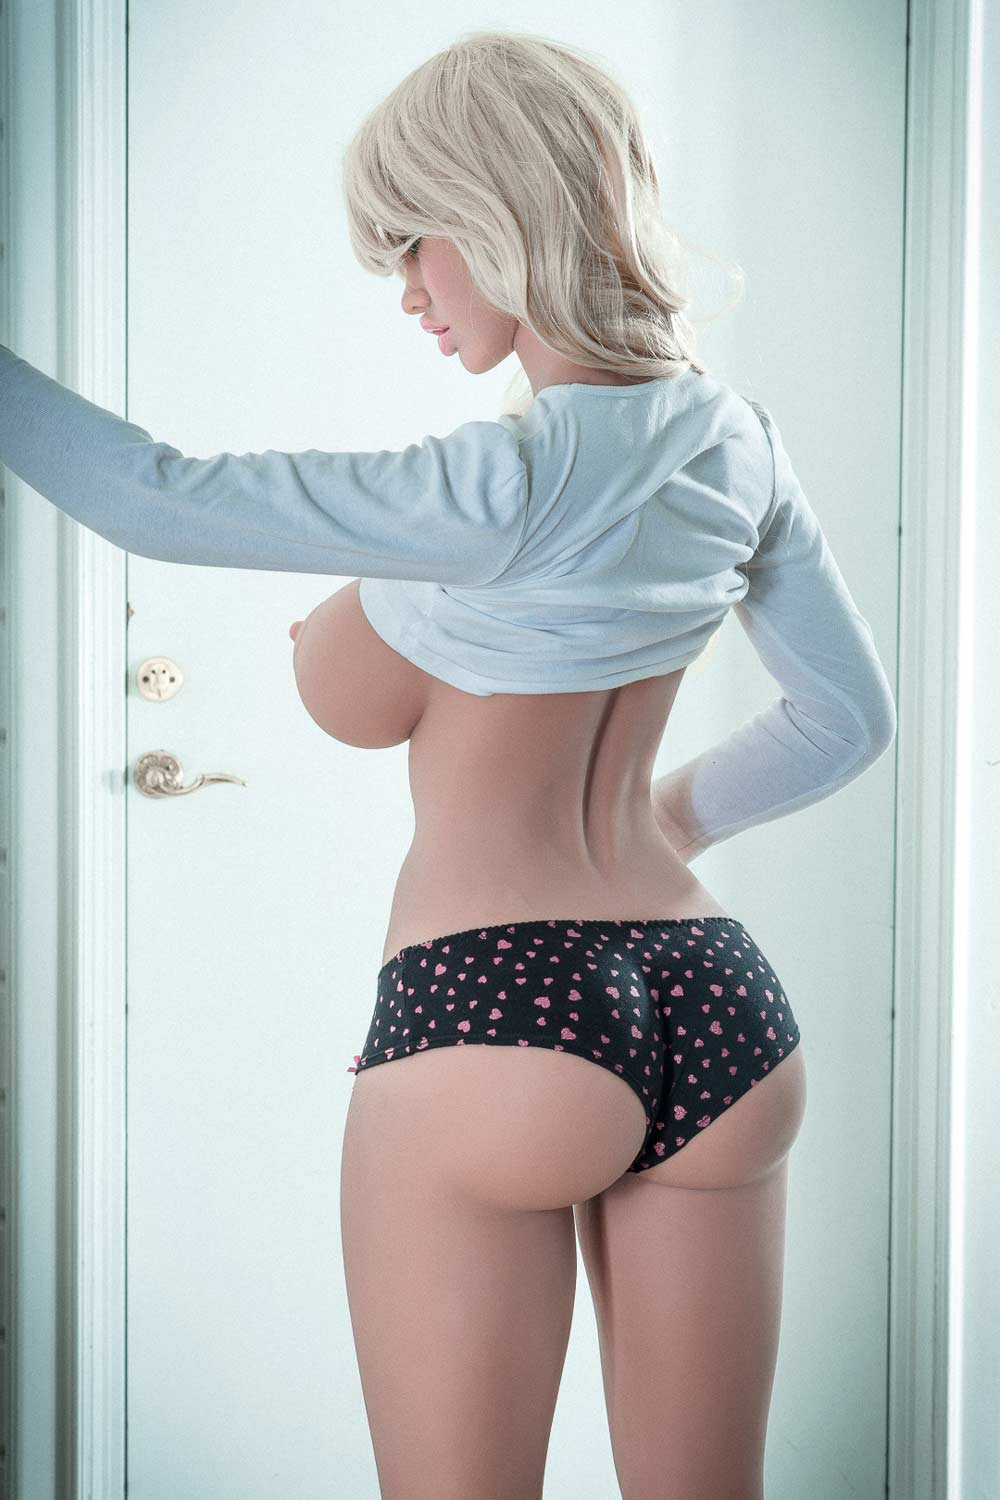 Sex doll showing buttocks